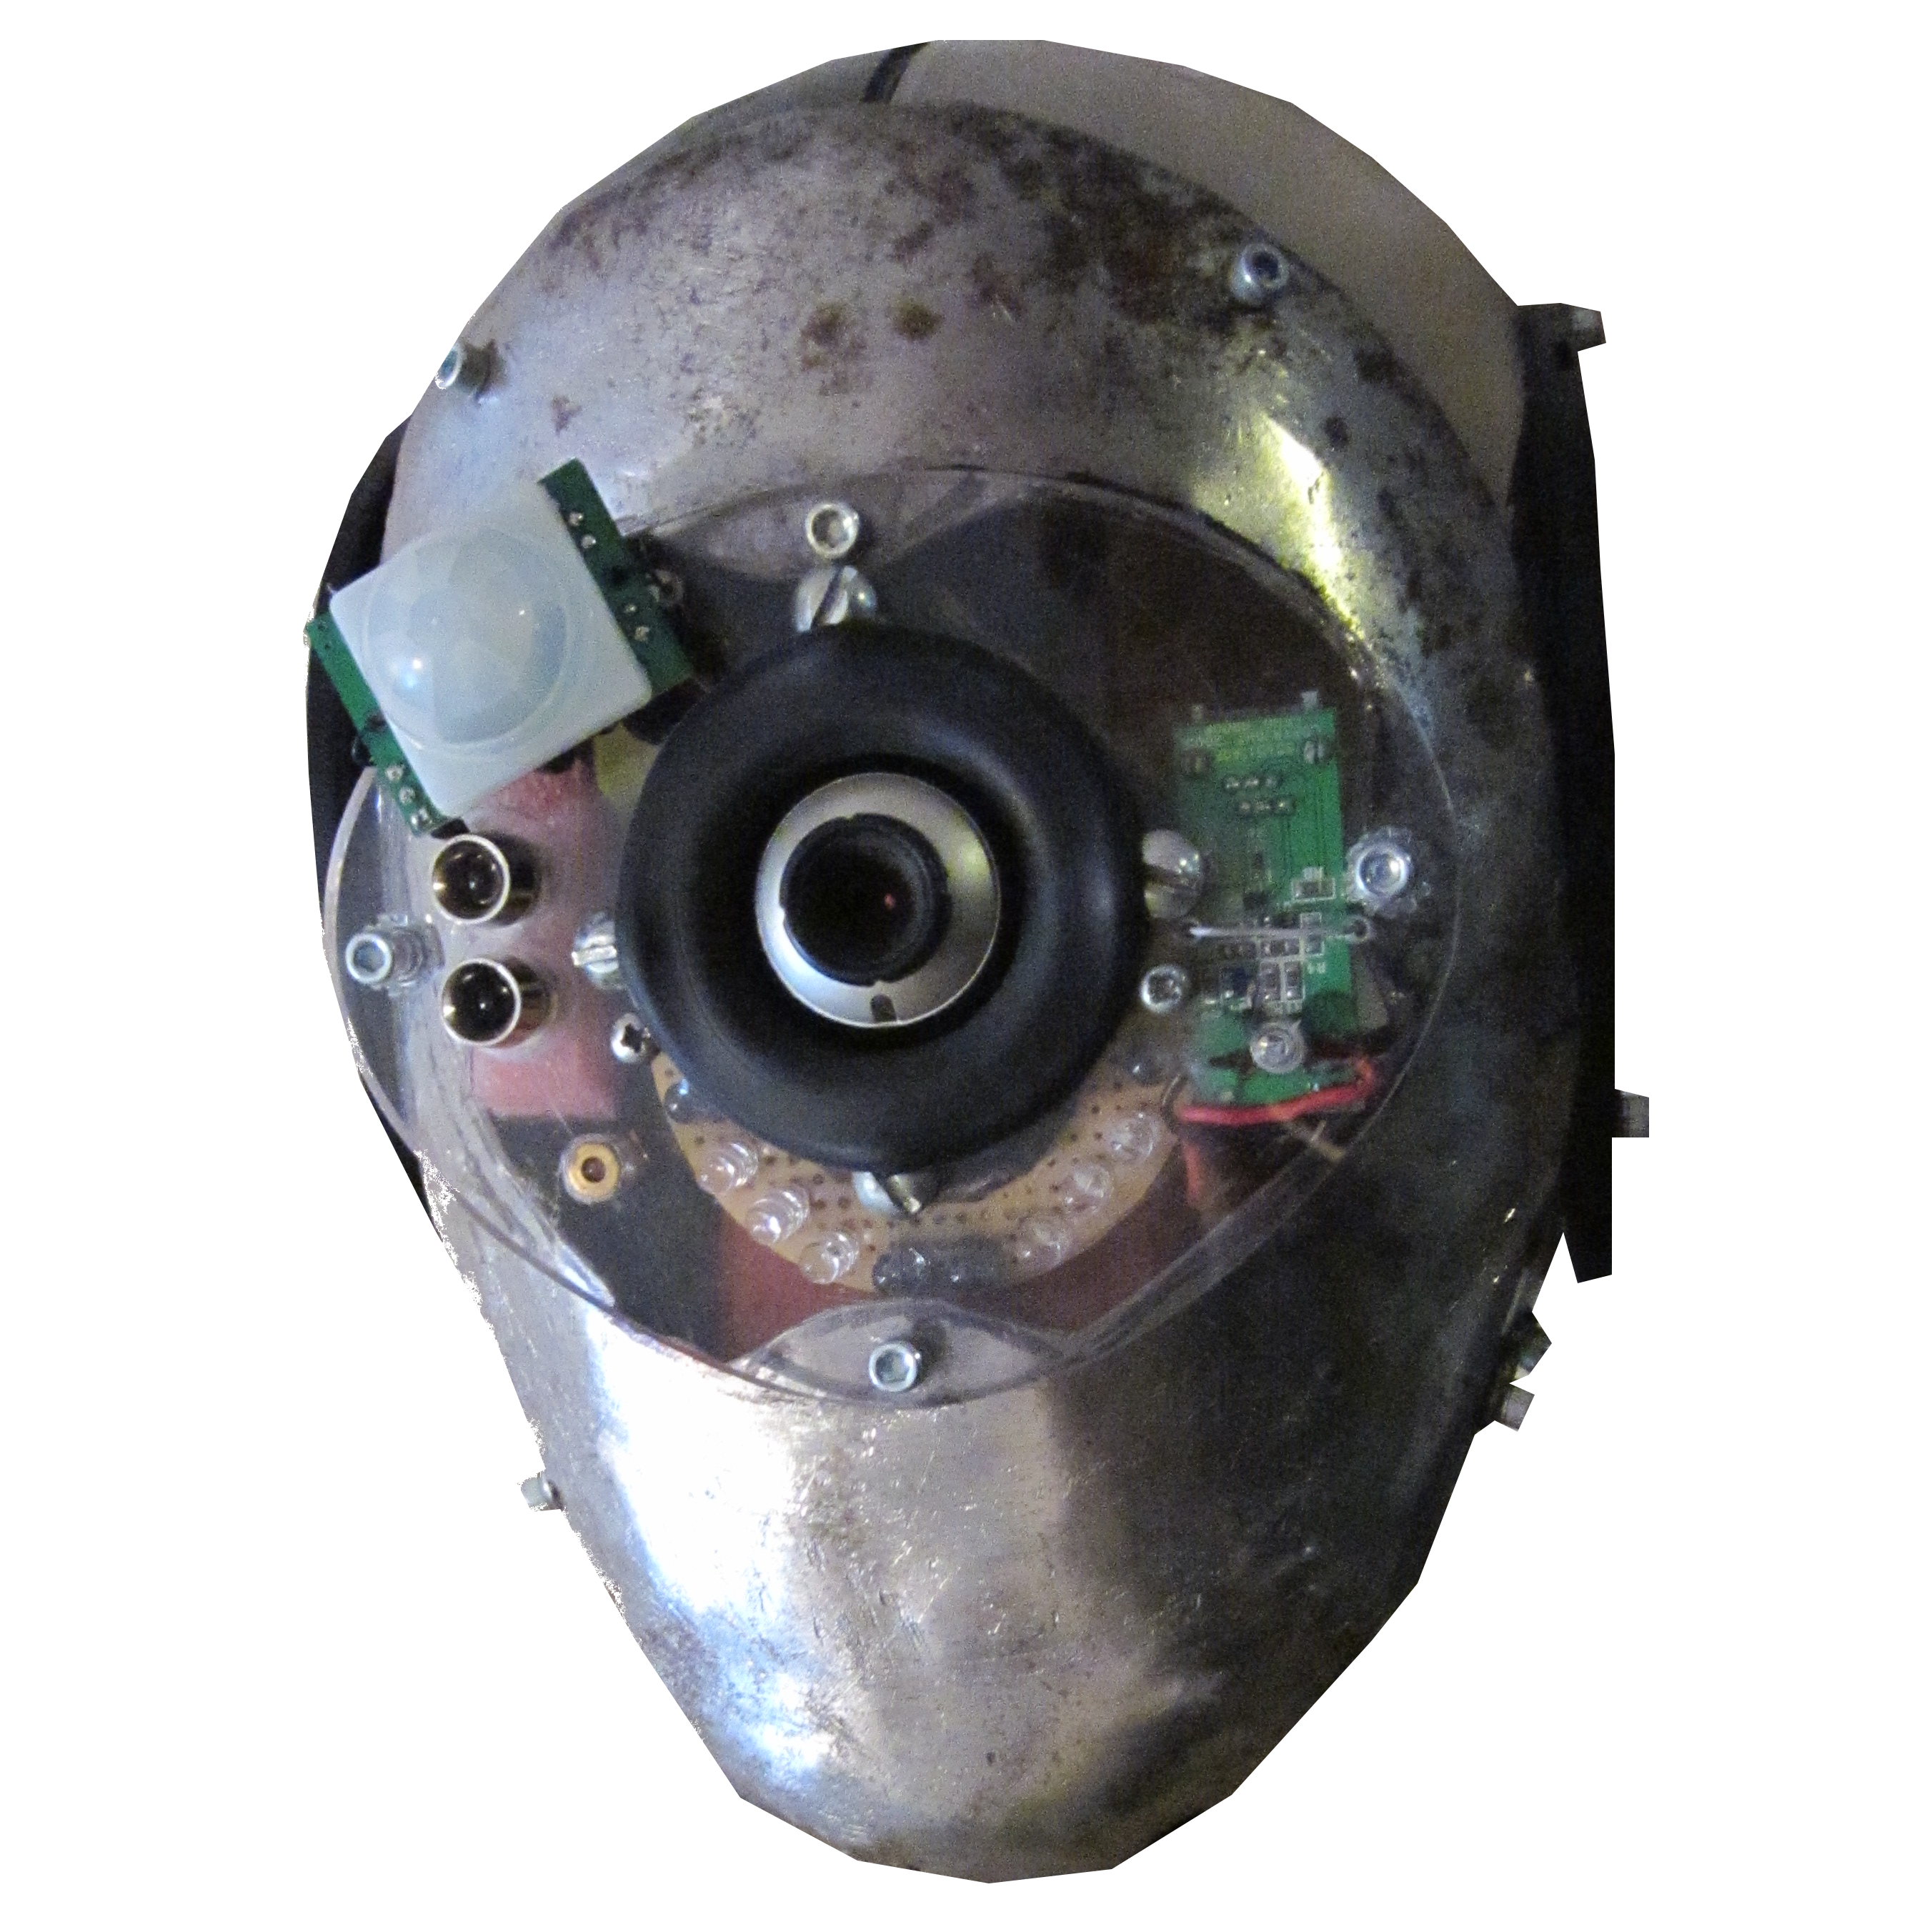 File:Salvius robot head.png.